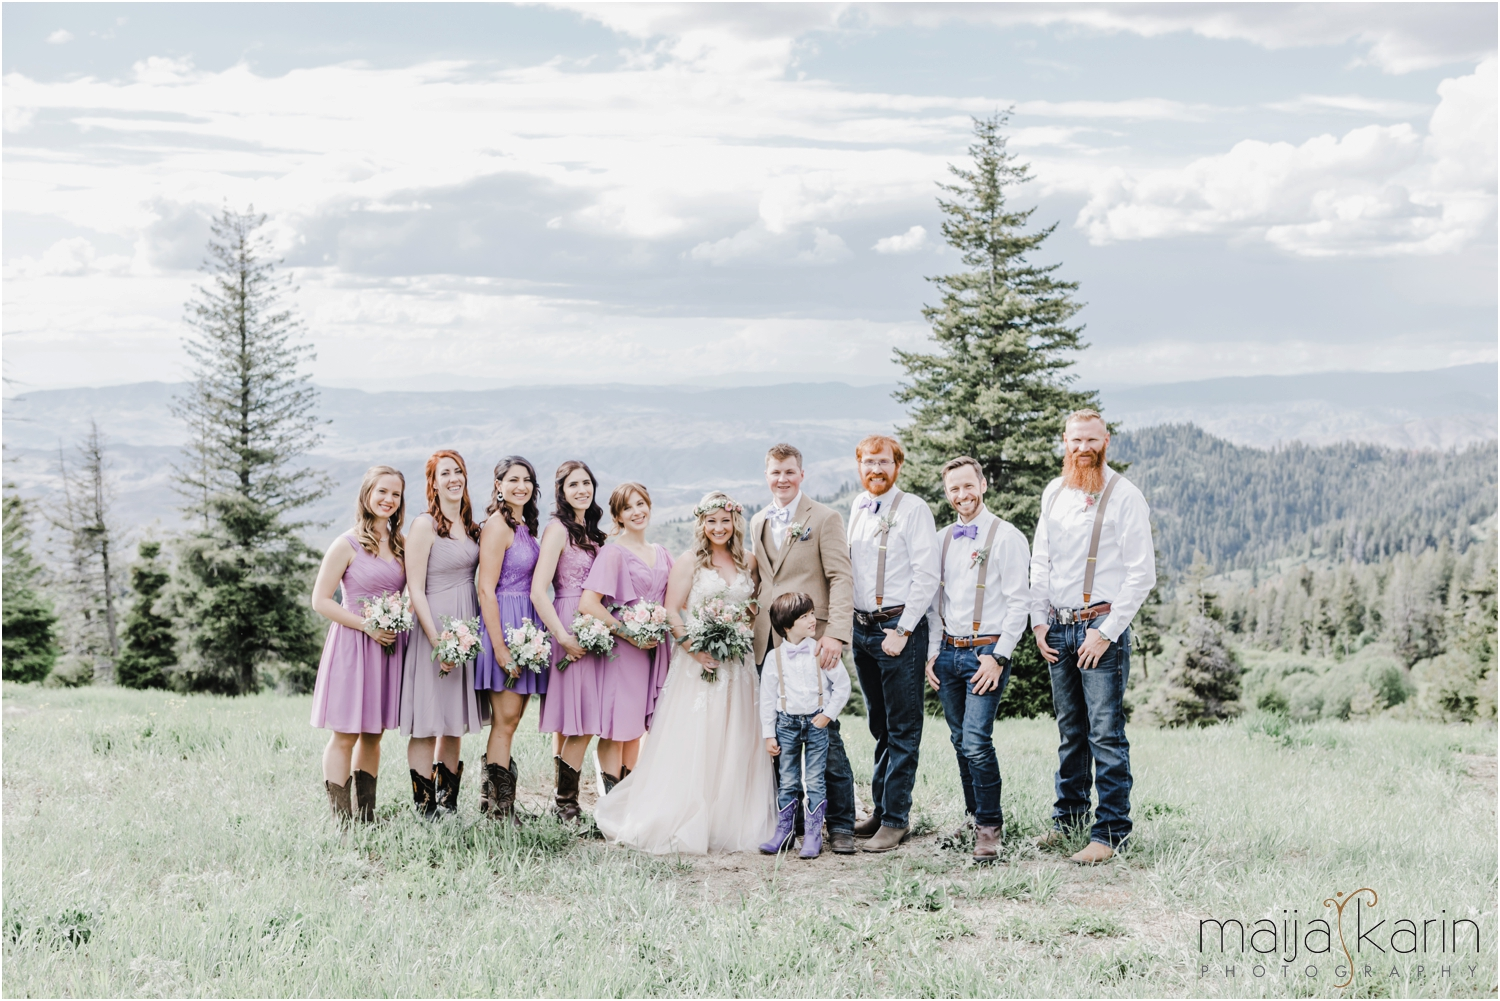 Bogus-Basin-Wedding-Maija-Karin-Photography_0049.jpg